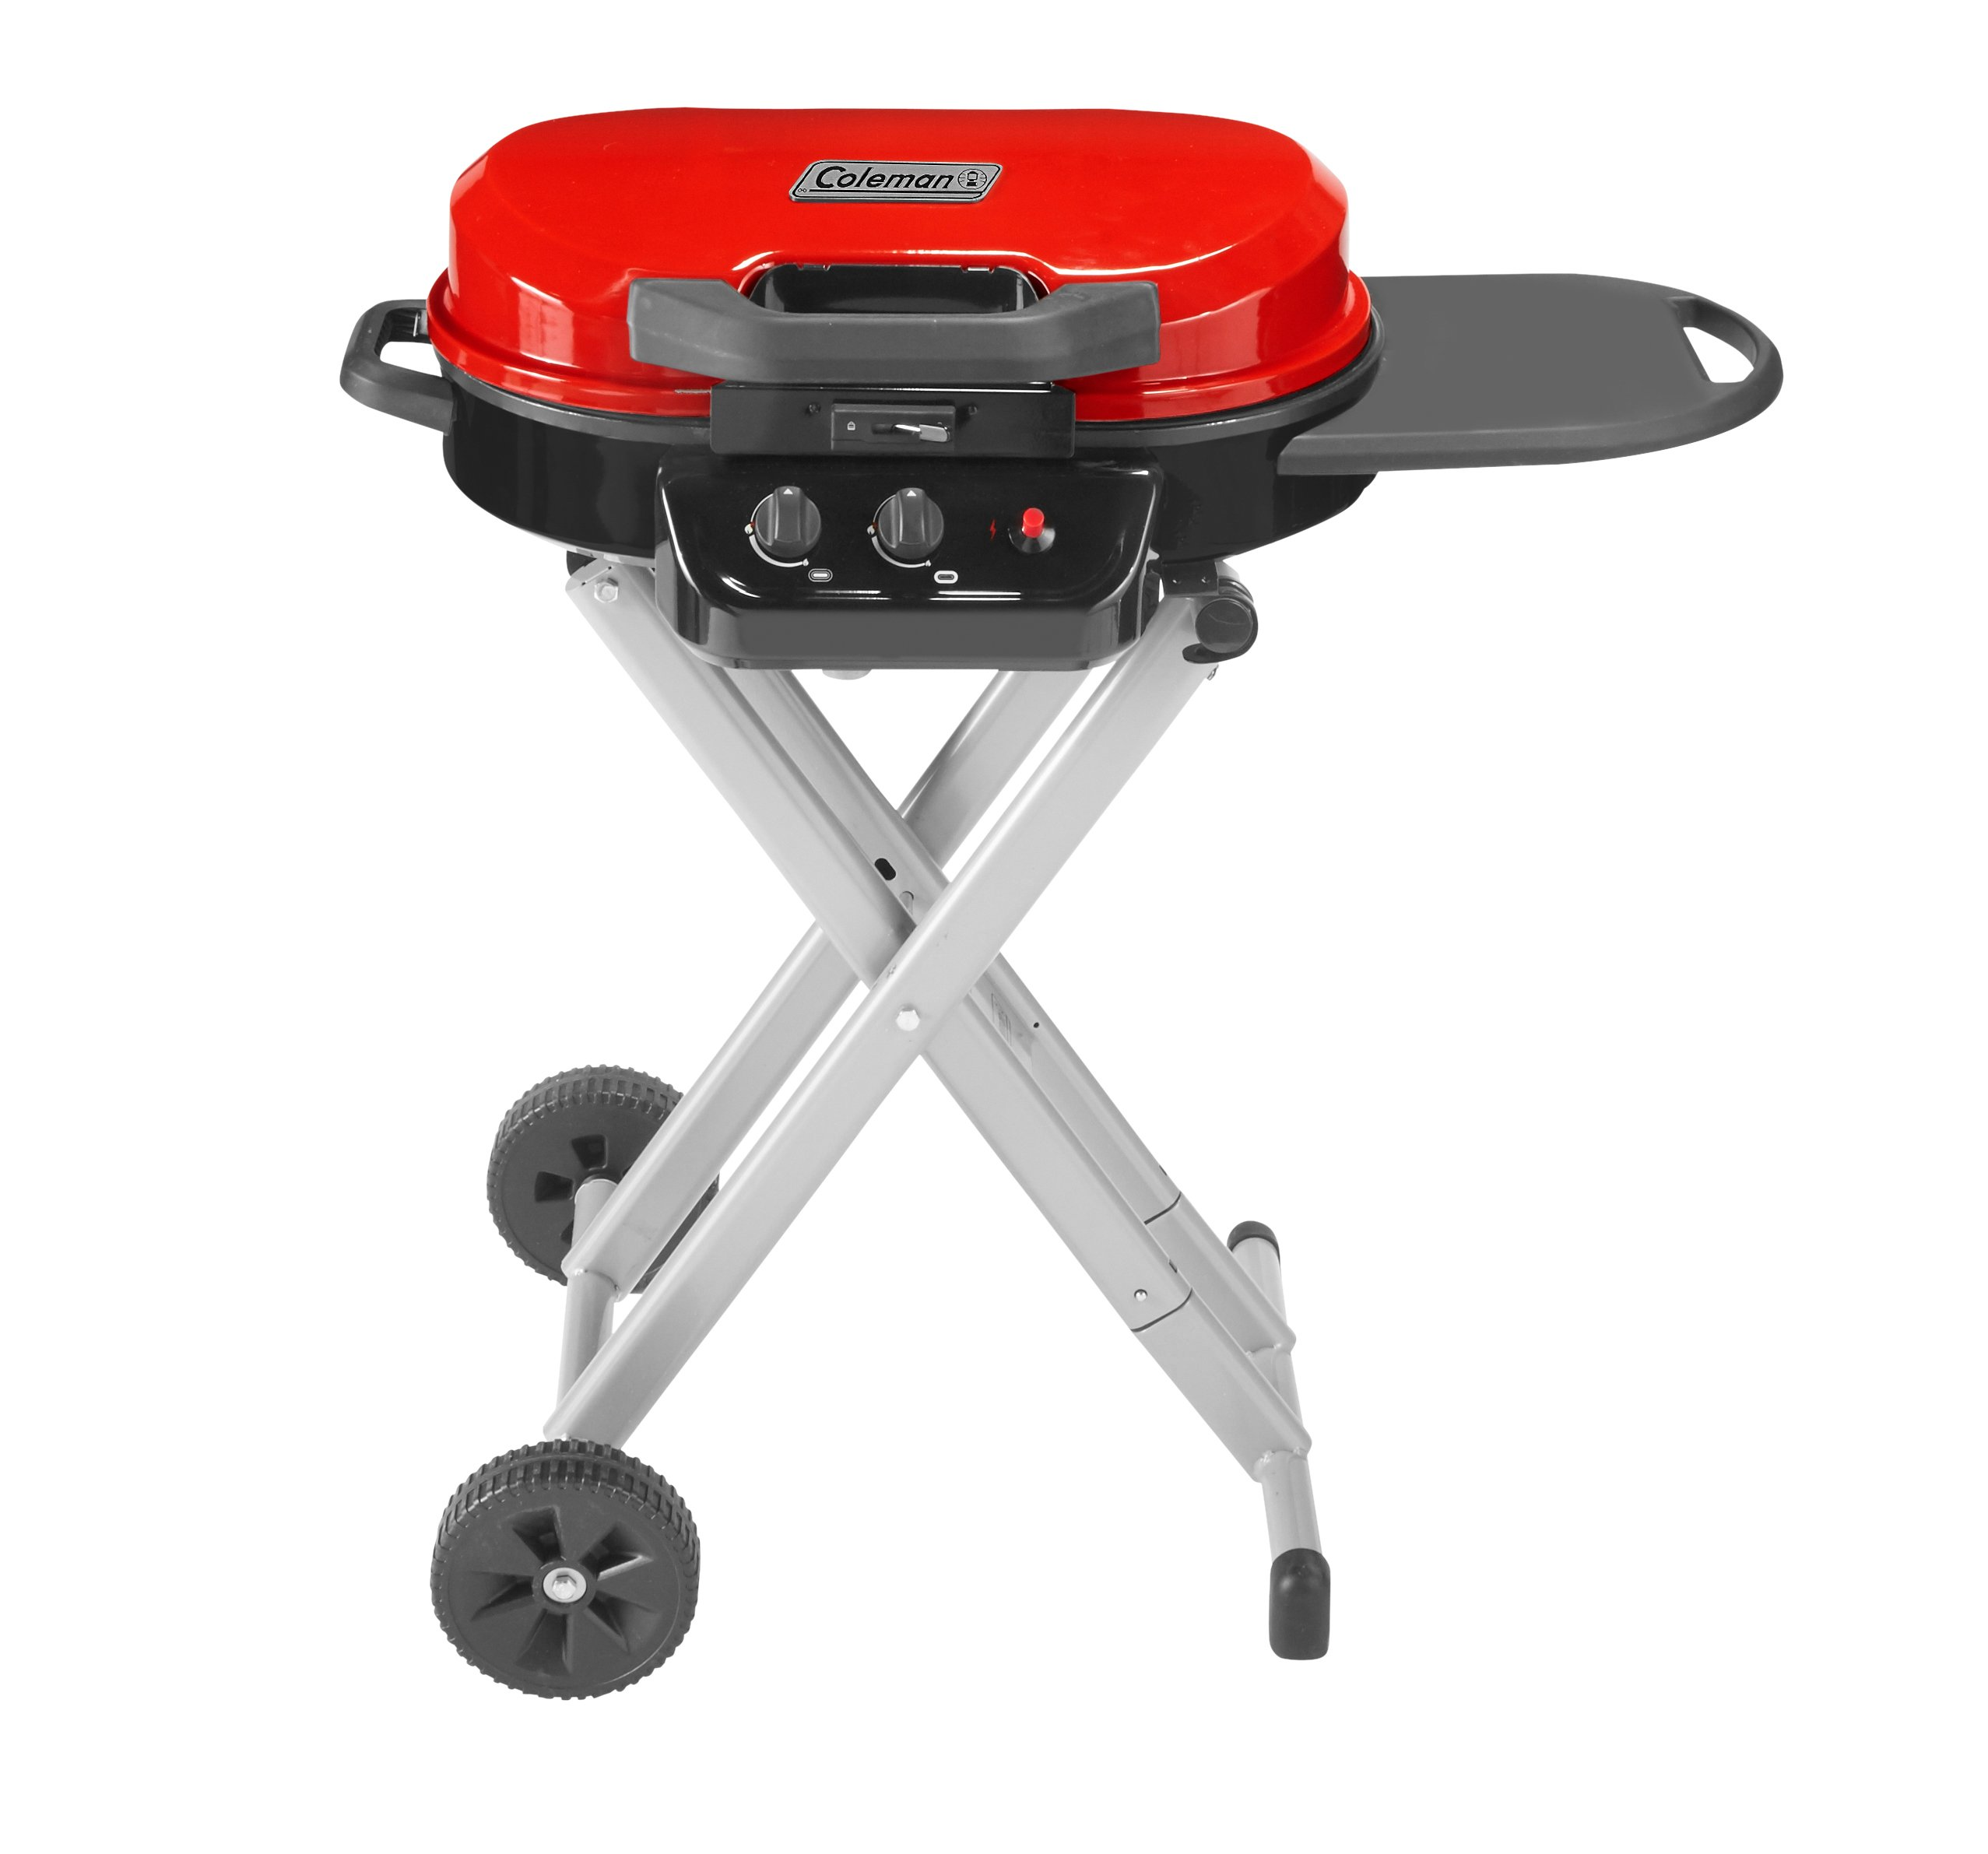 Coleman Gas Grill | Portable Propane Grill for Camping & Tailgating | 225 Roadtrip Standup Grill by Coleman